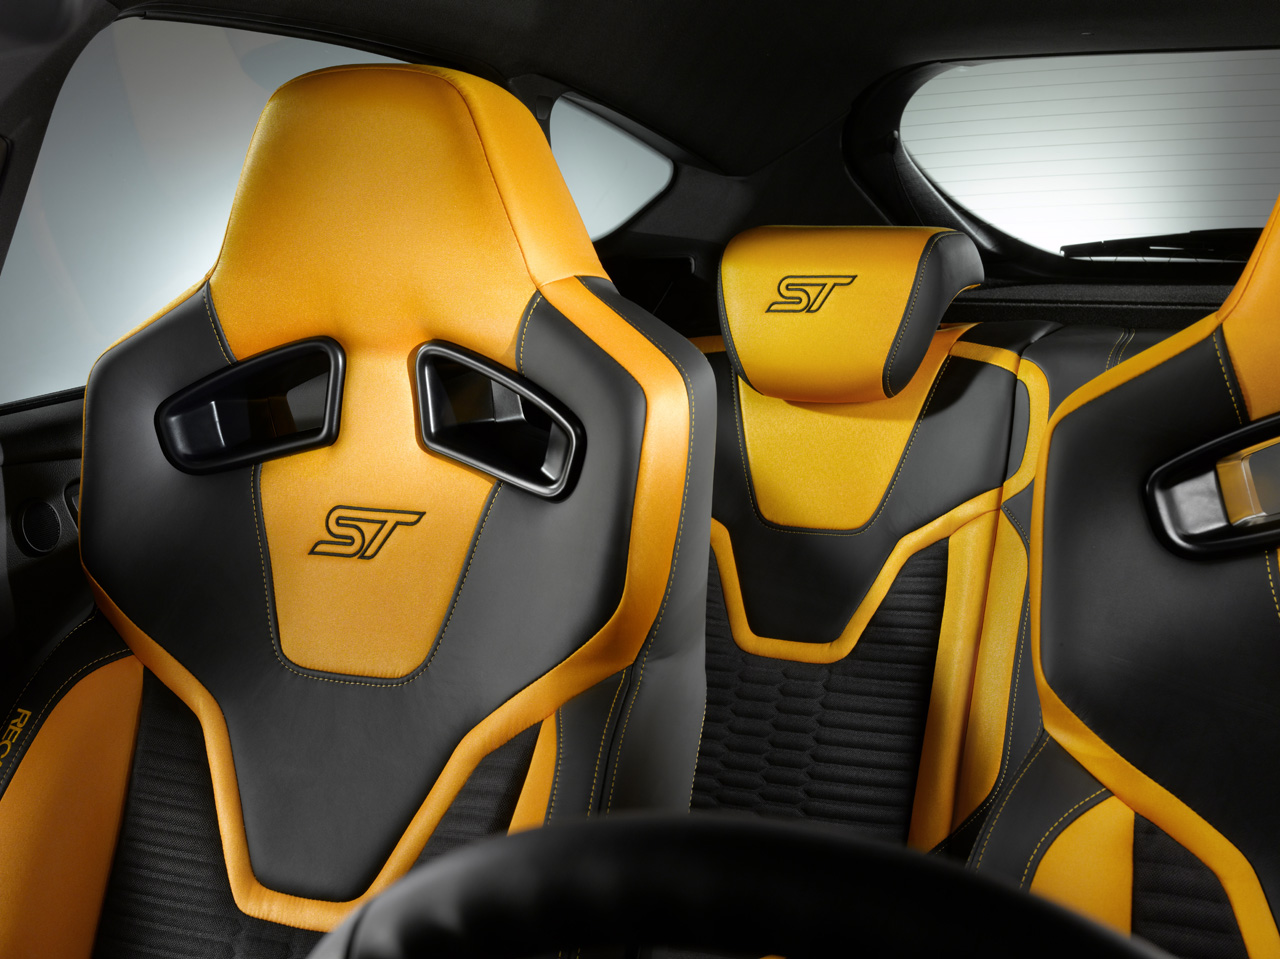 2012 Ford Focus ST interior